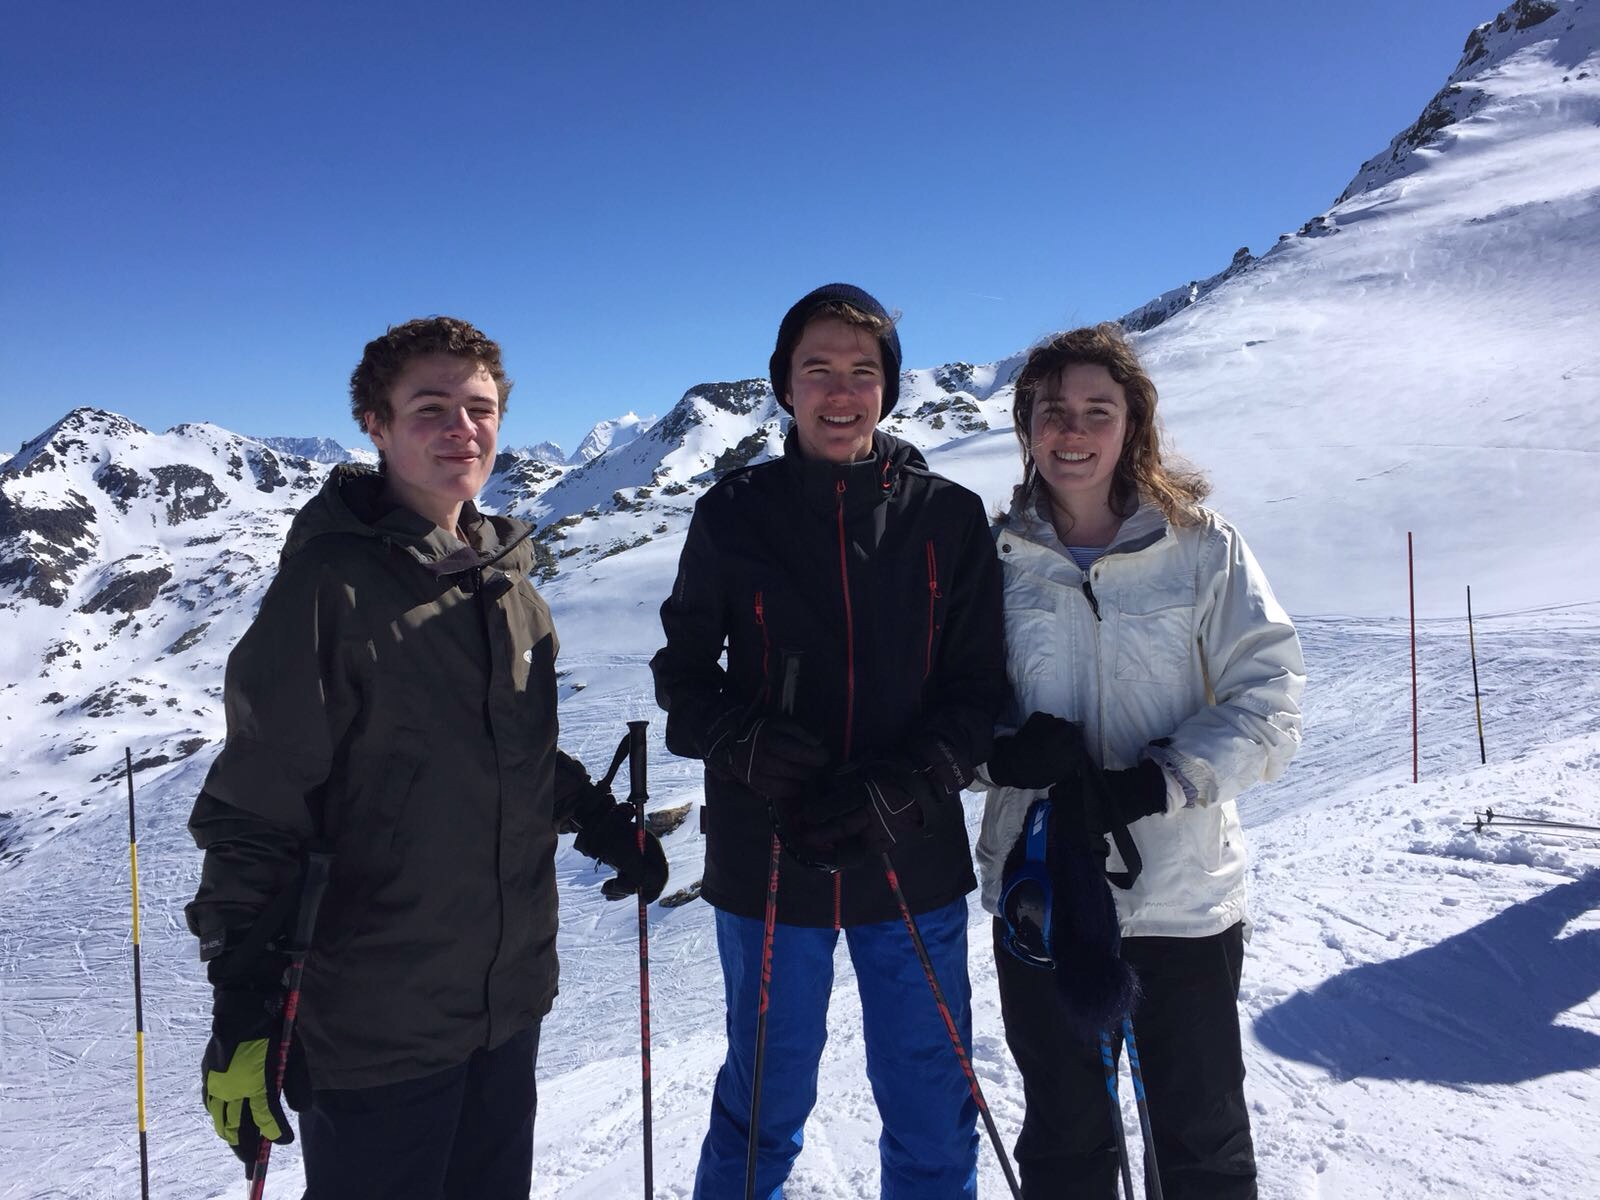 skiing two months after mum died ….all a bit weird without her (but of course still a happy moment together)